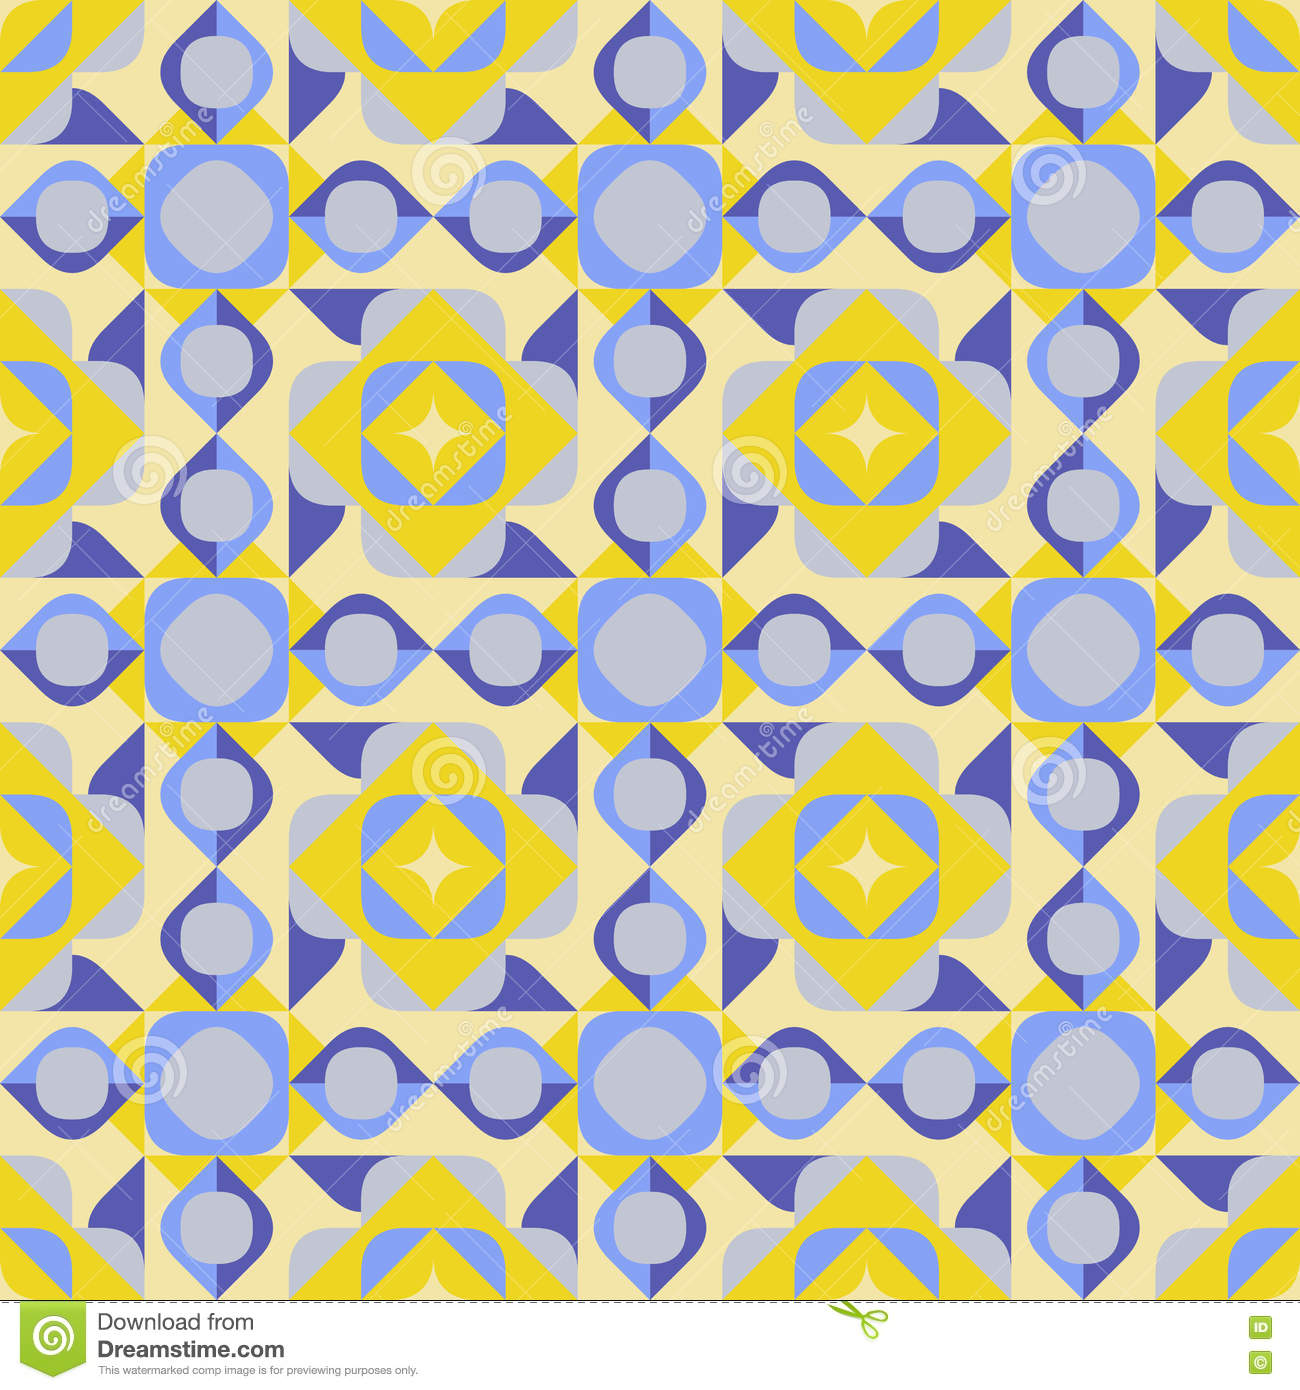 blue yellow white circle - photo #38